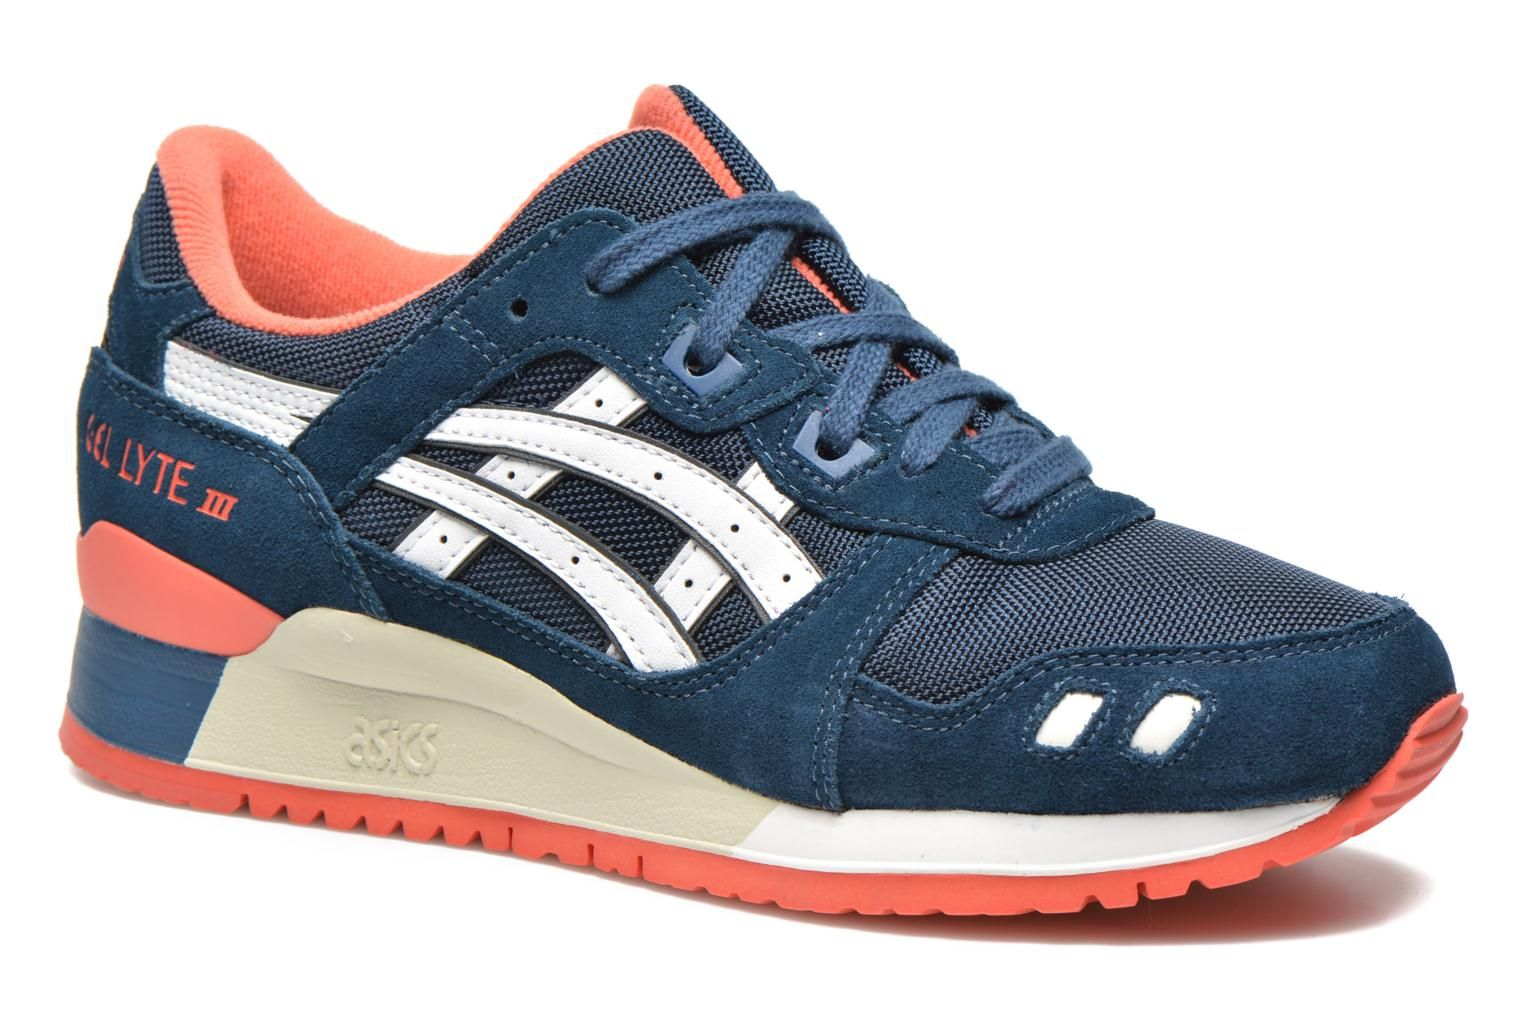 asics tiger dames gel lyte iii sneakers lichtblauw/wit